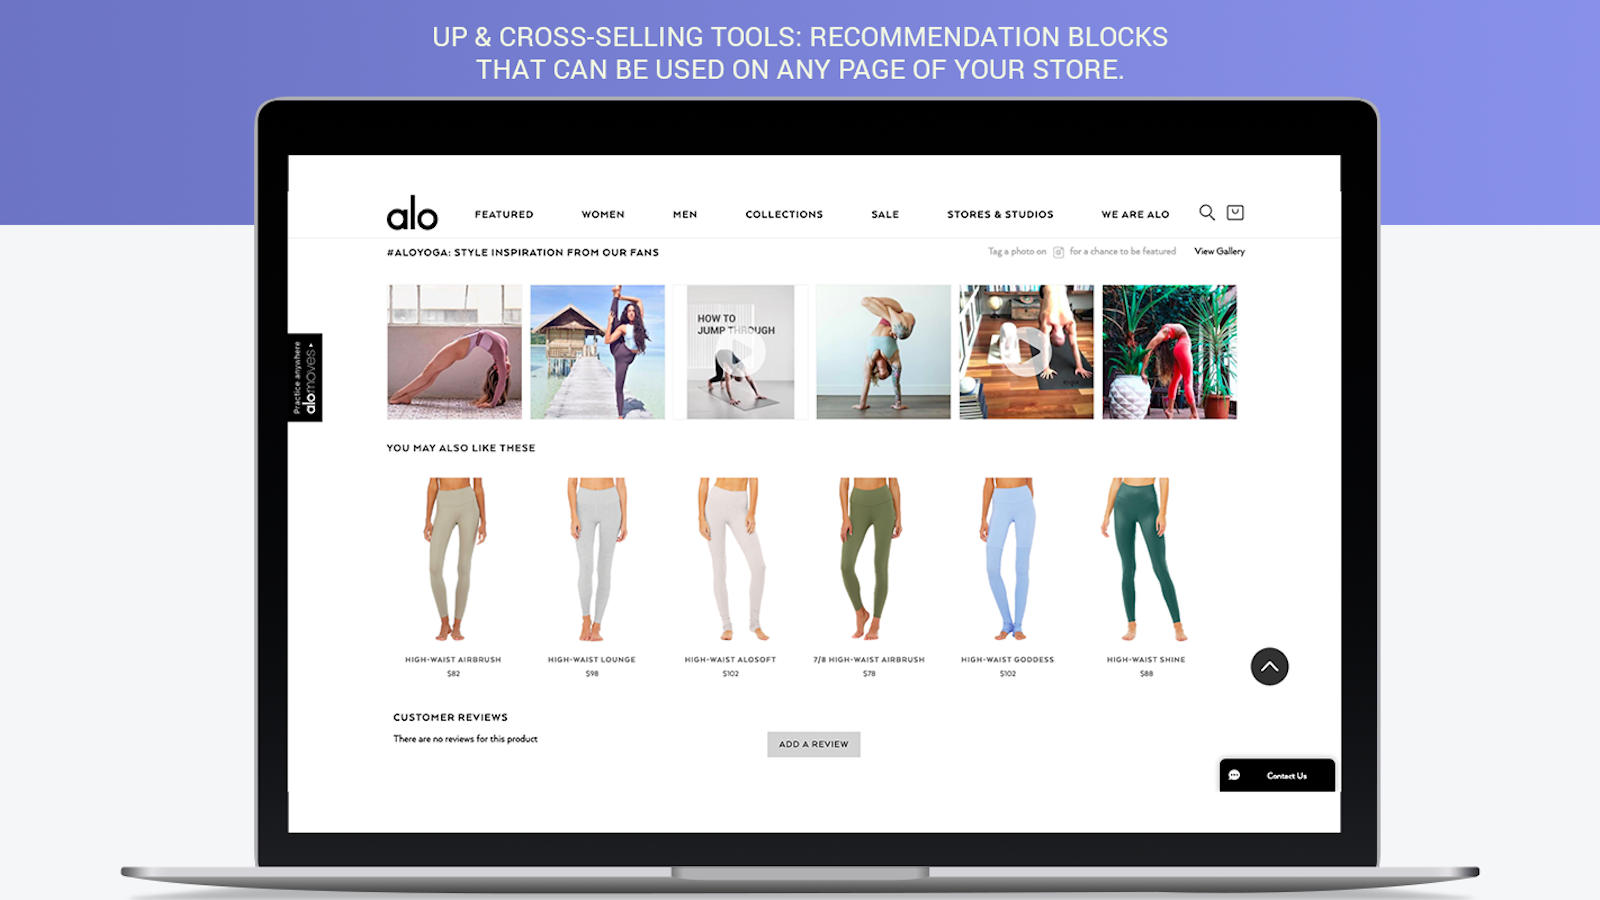 Up & Cross-selling tools for Shopify: Recommendations